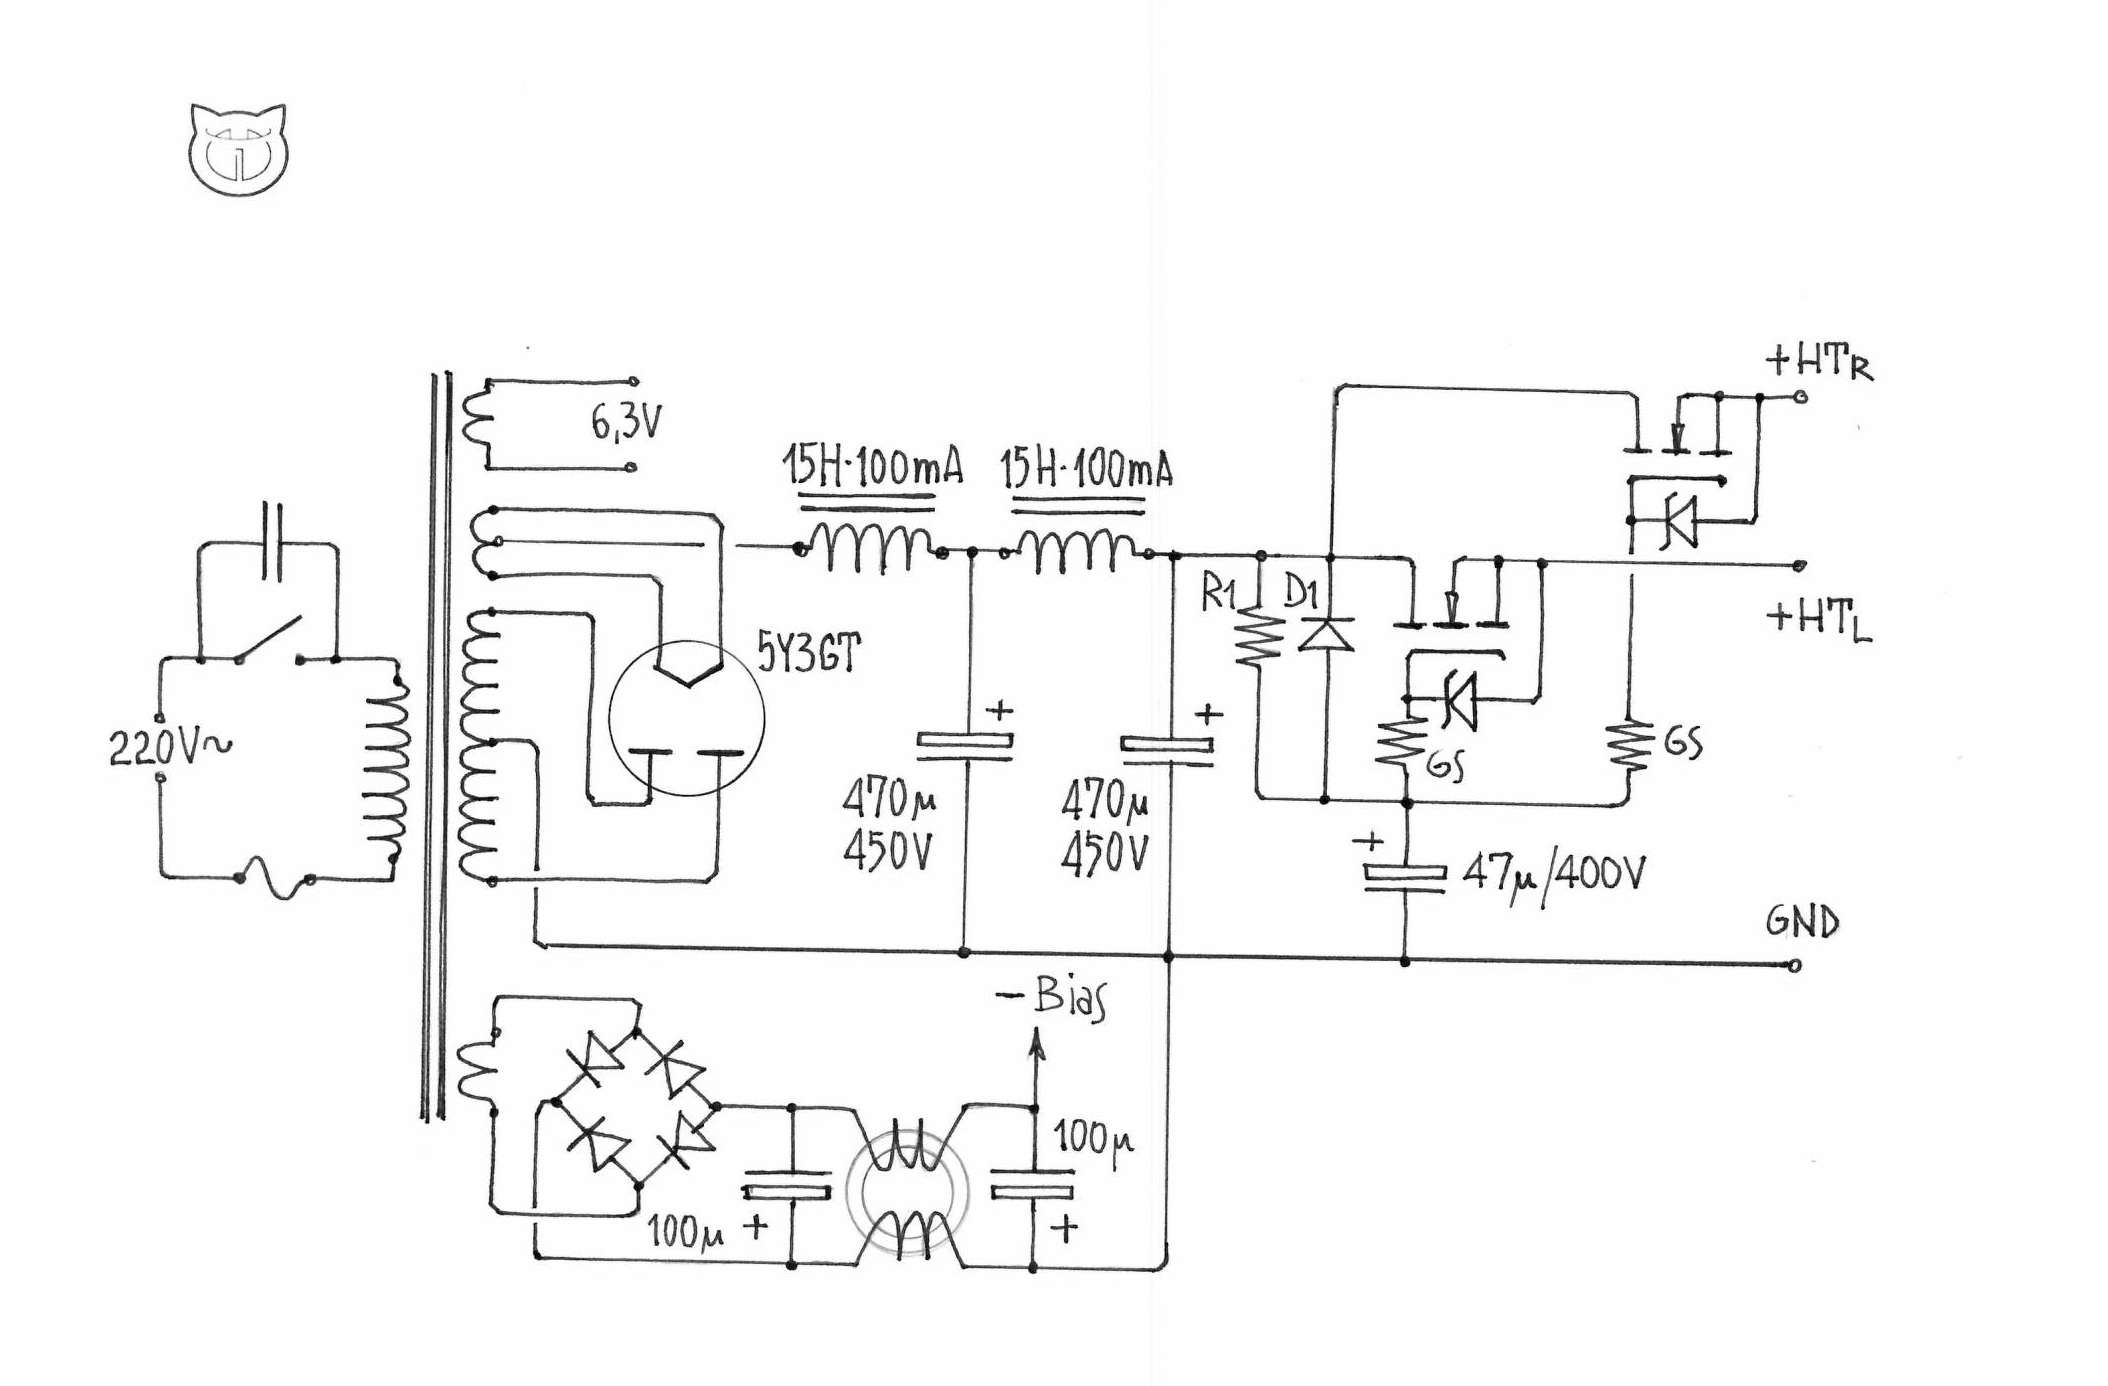 Amplifier Nekolab Tube Rectifier Schematic Further Power Lifier Schematics In Supply I Suggest To Use Like 5y3gt Followed By Lclc Type Regulator For The Lowest Hum And Best L R Separation A Mosfet